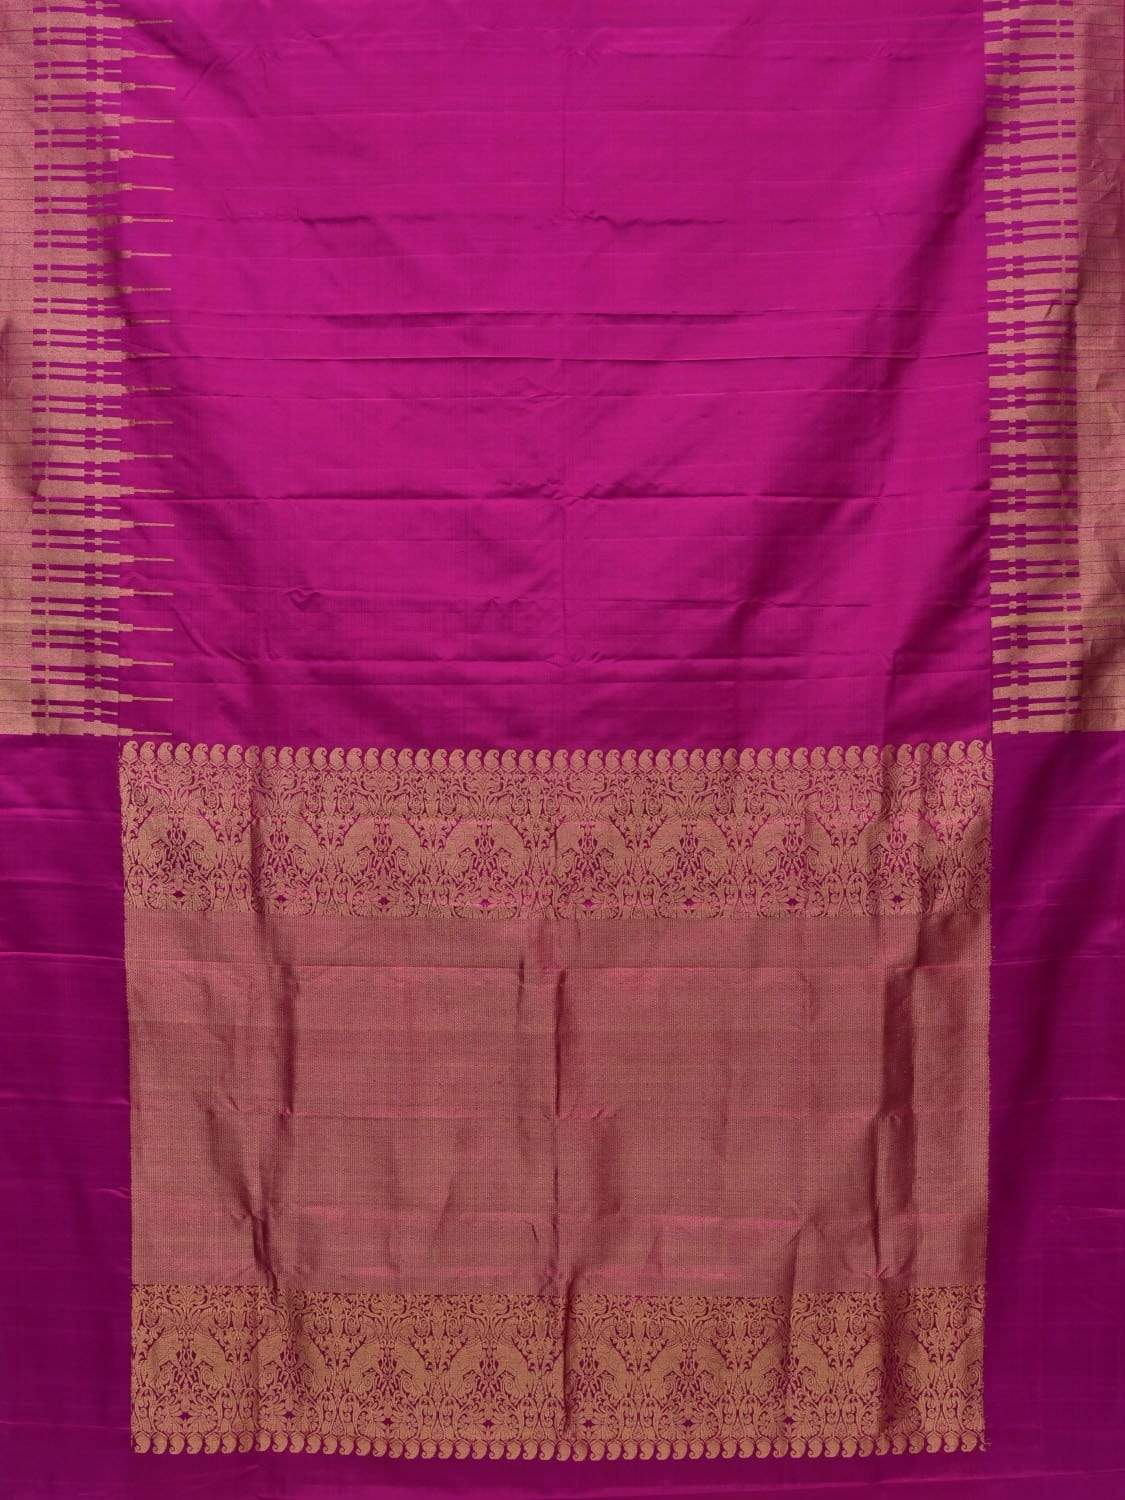 Purple Kanchipuram Silk Handloom Saree with Border Temple Design k0497